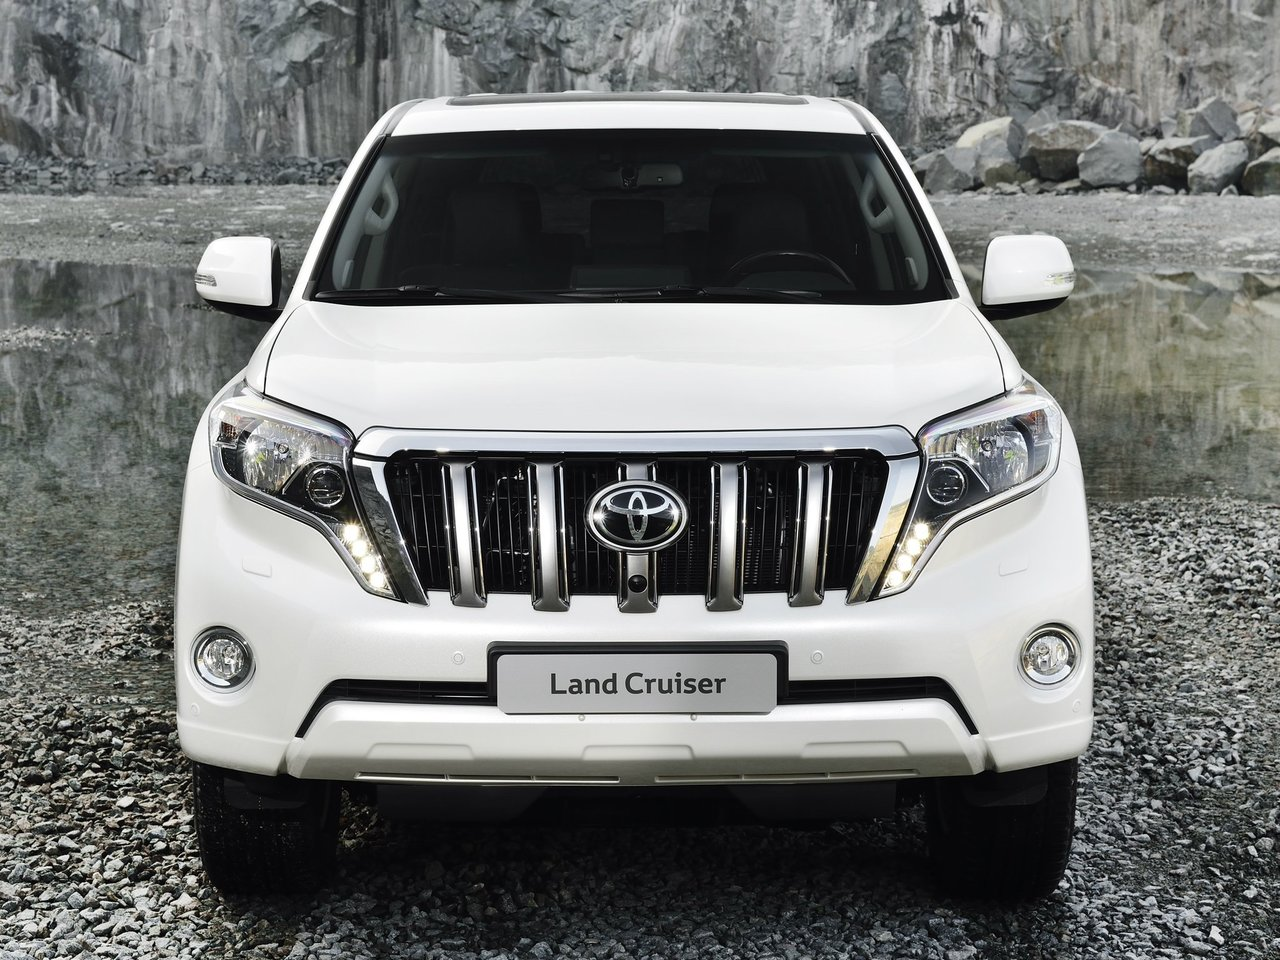 Снимки: Toyota Land Cruiser 150 Facelift 2015